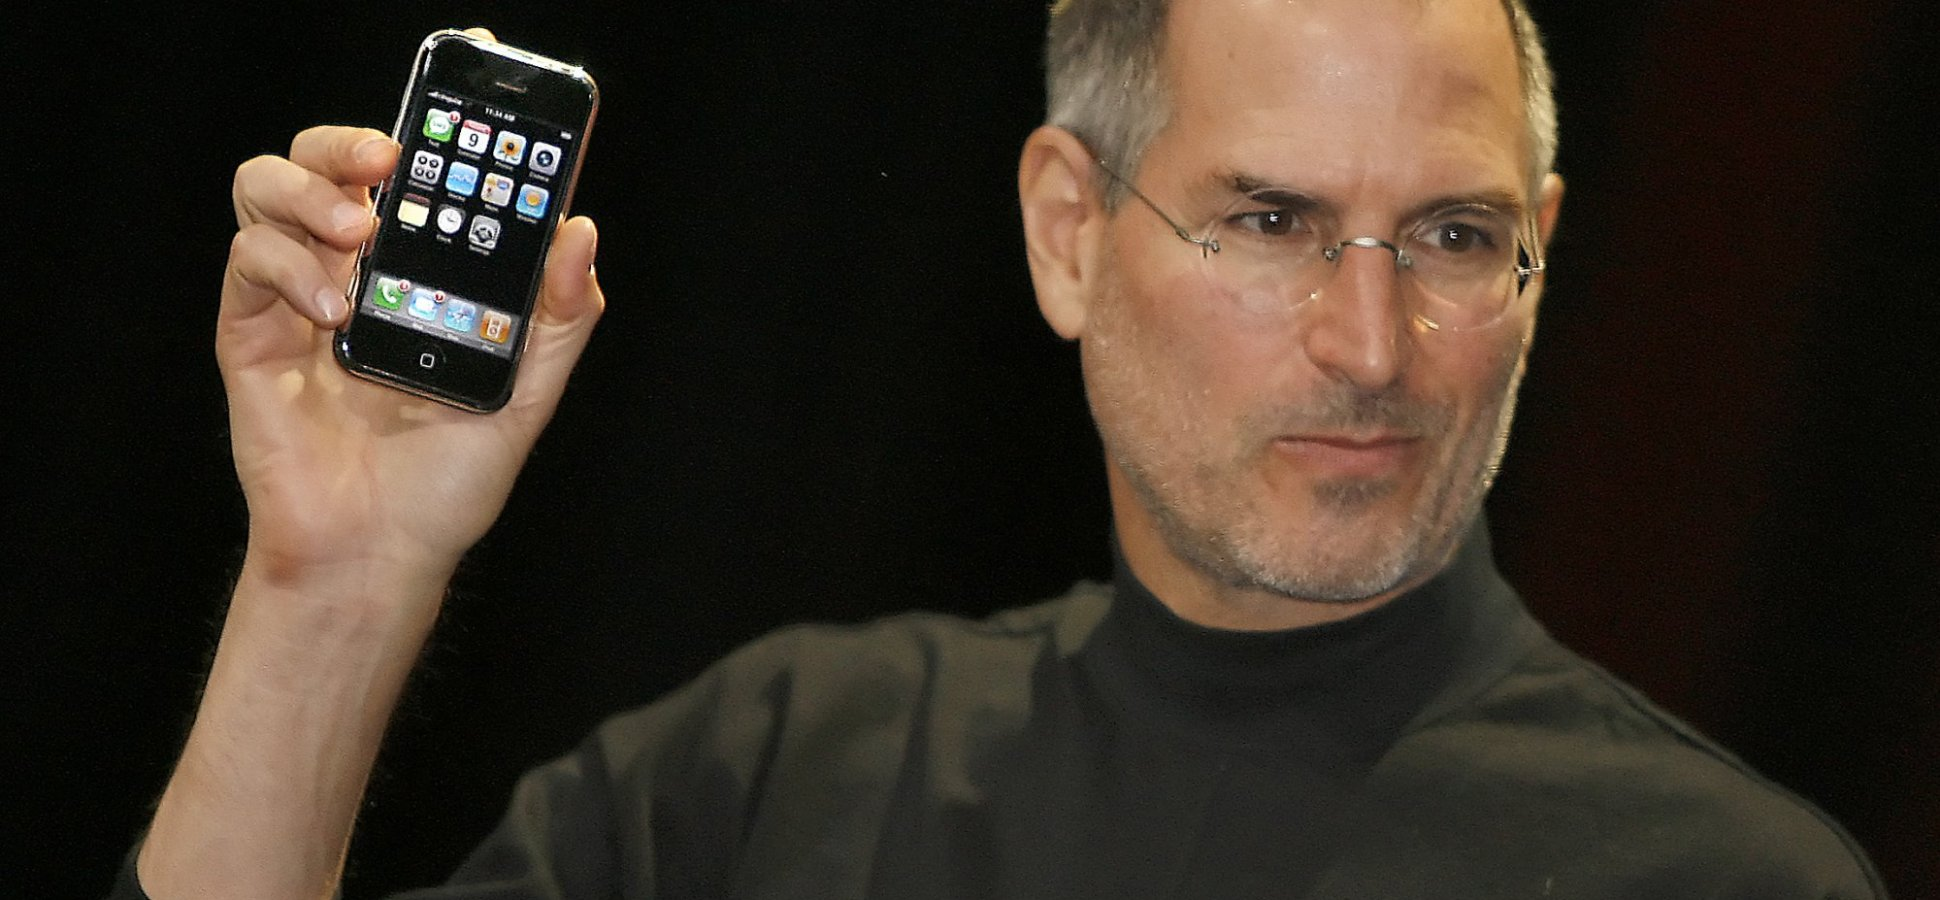 12 Years Ago, Steve Jobs Taught an Astonishingly Effective Leadership Lesson in 5 Short Parts